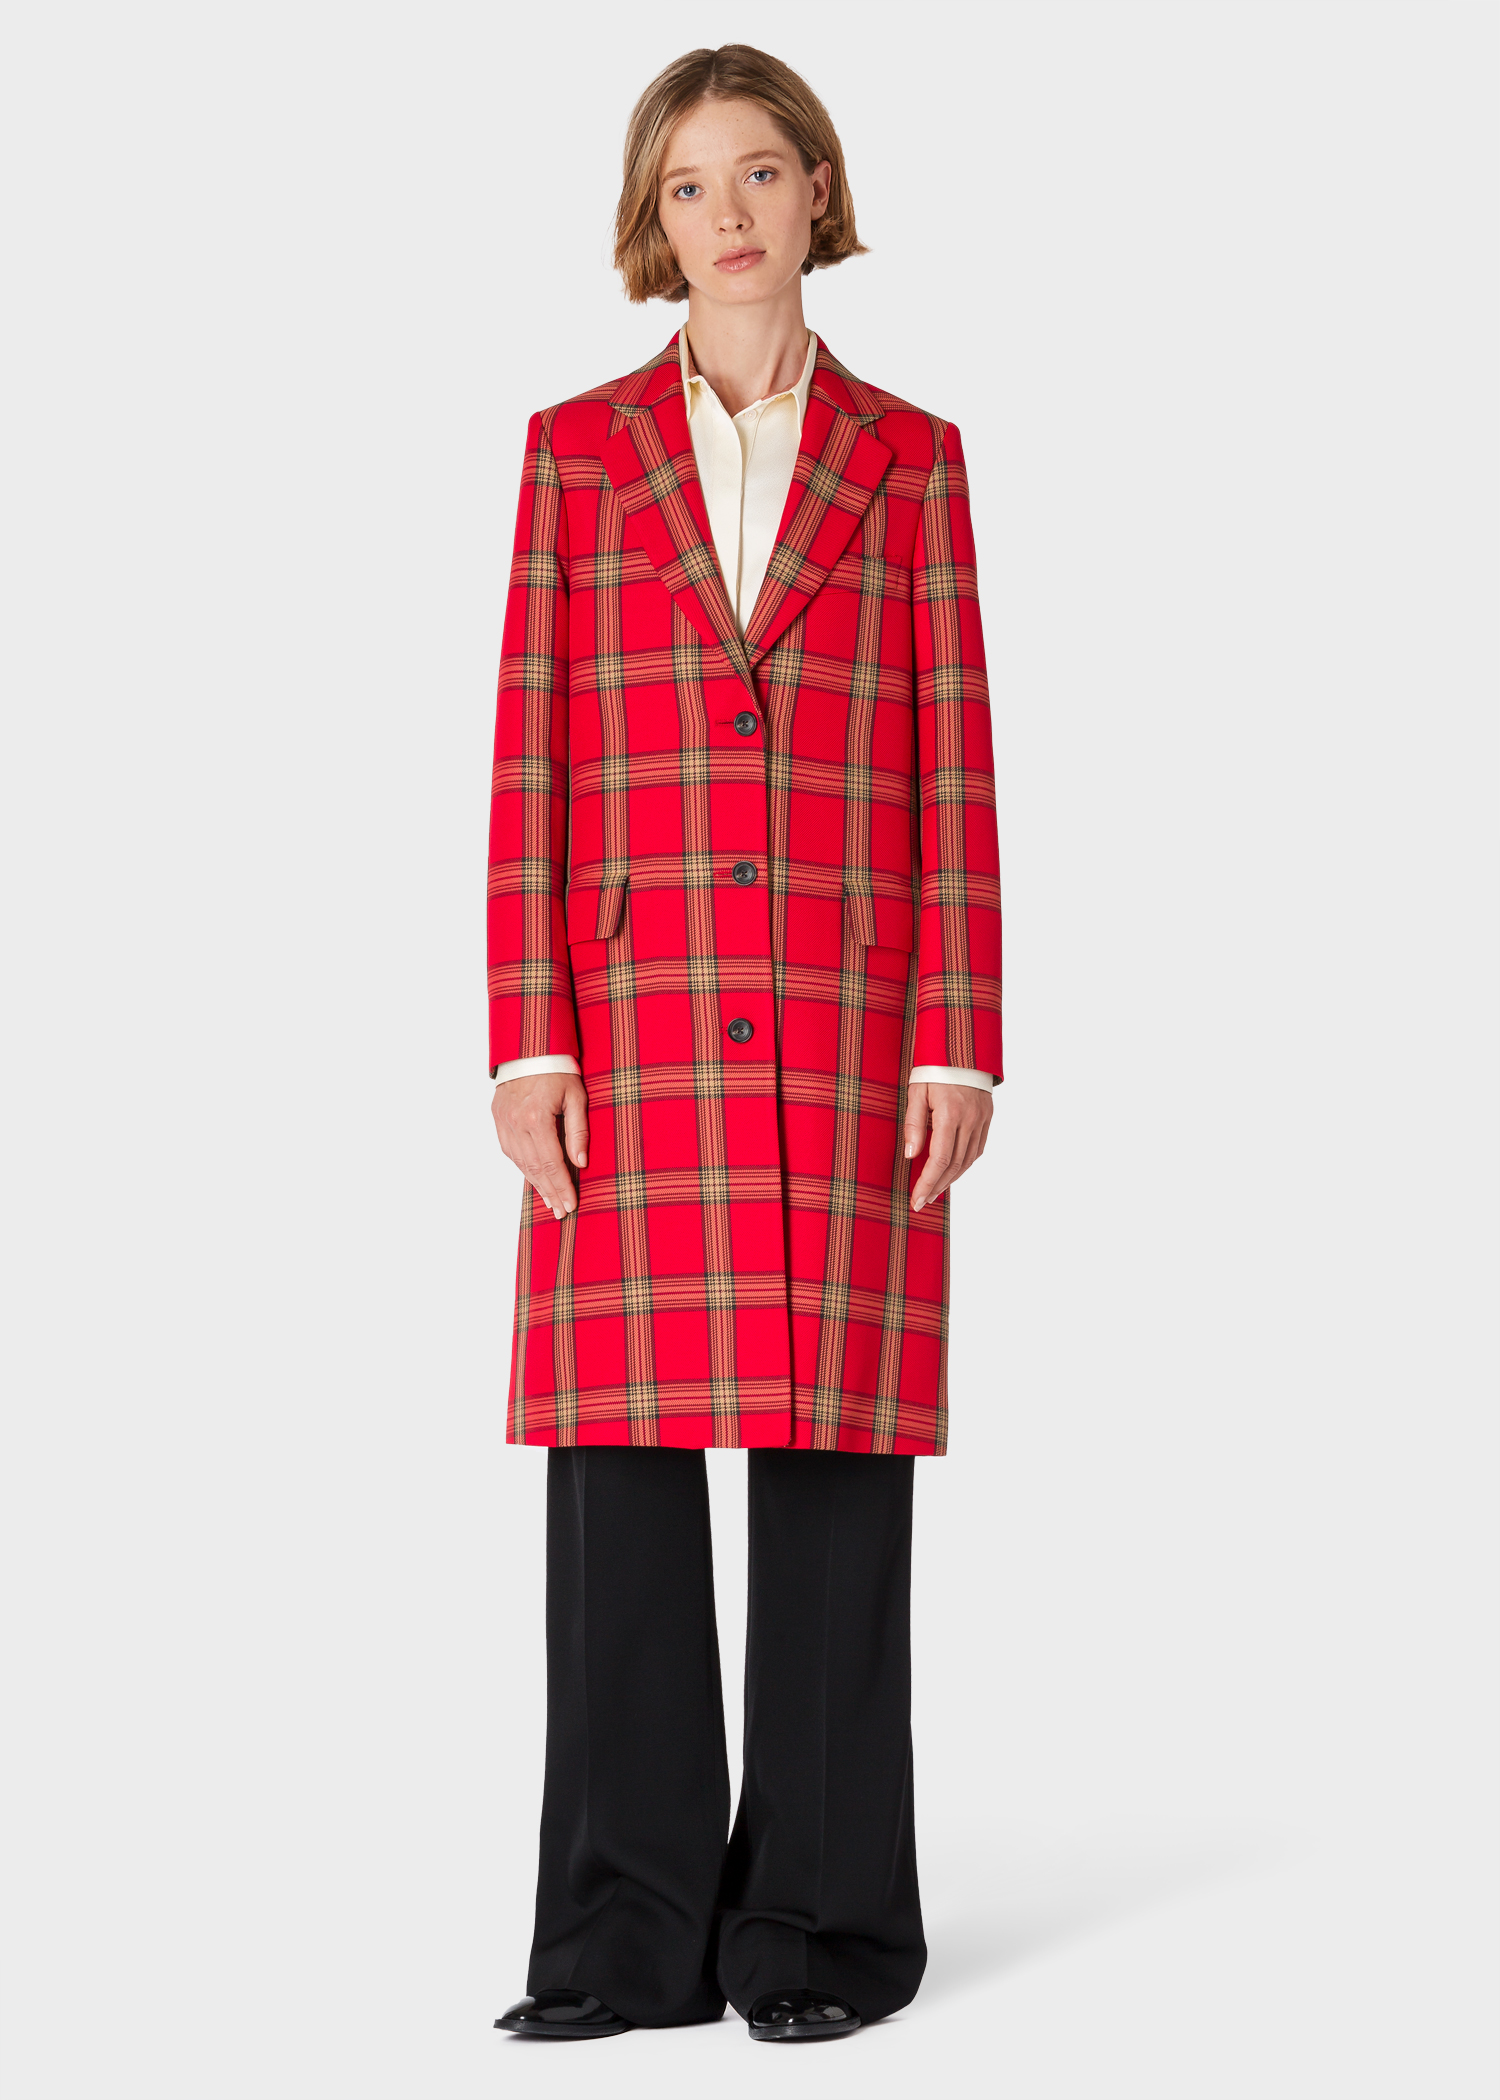 665d62af1cfa76 Model front view - Women's Red Tartan Check Epsom Coat Paul Smith